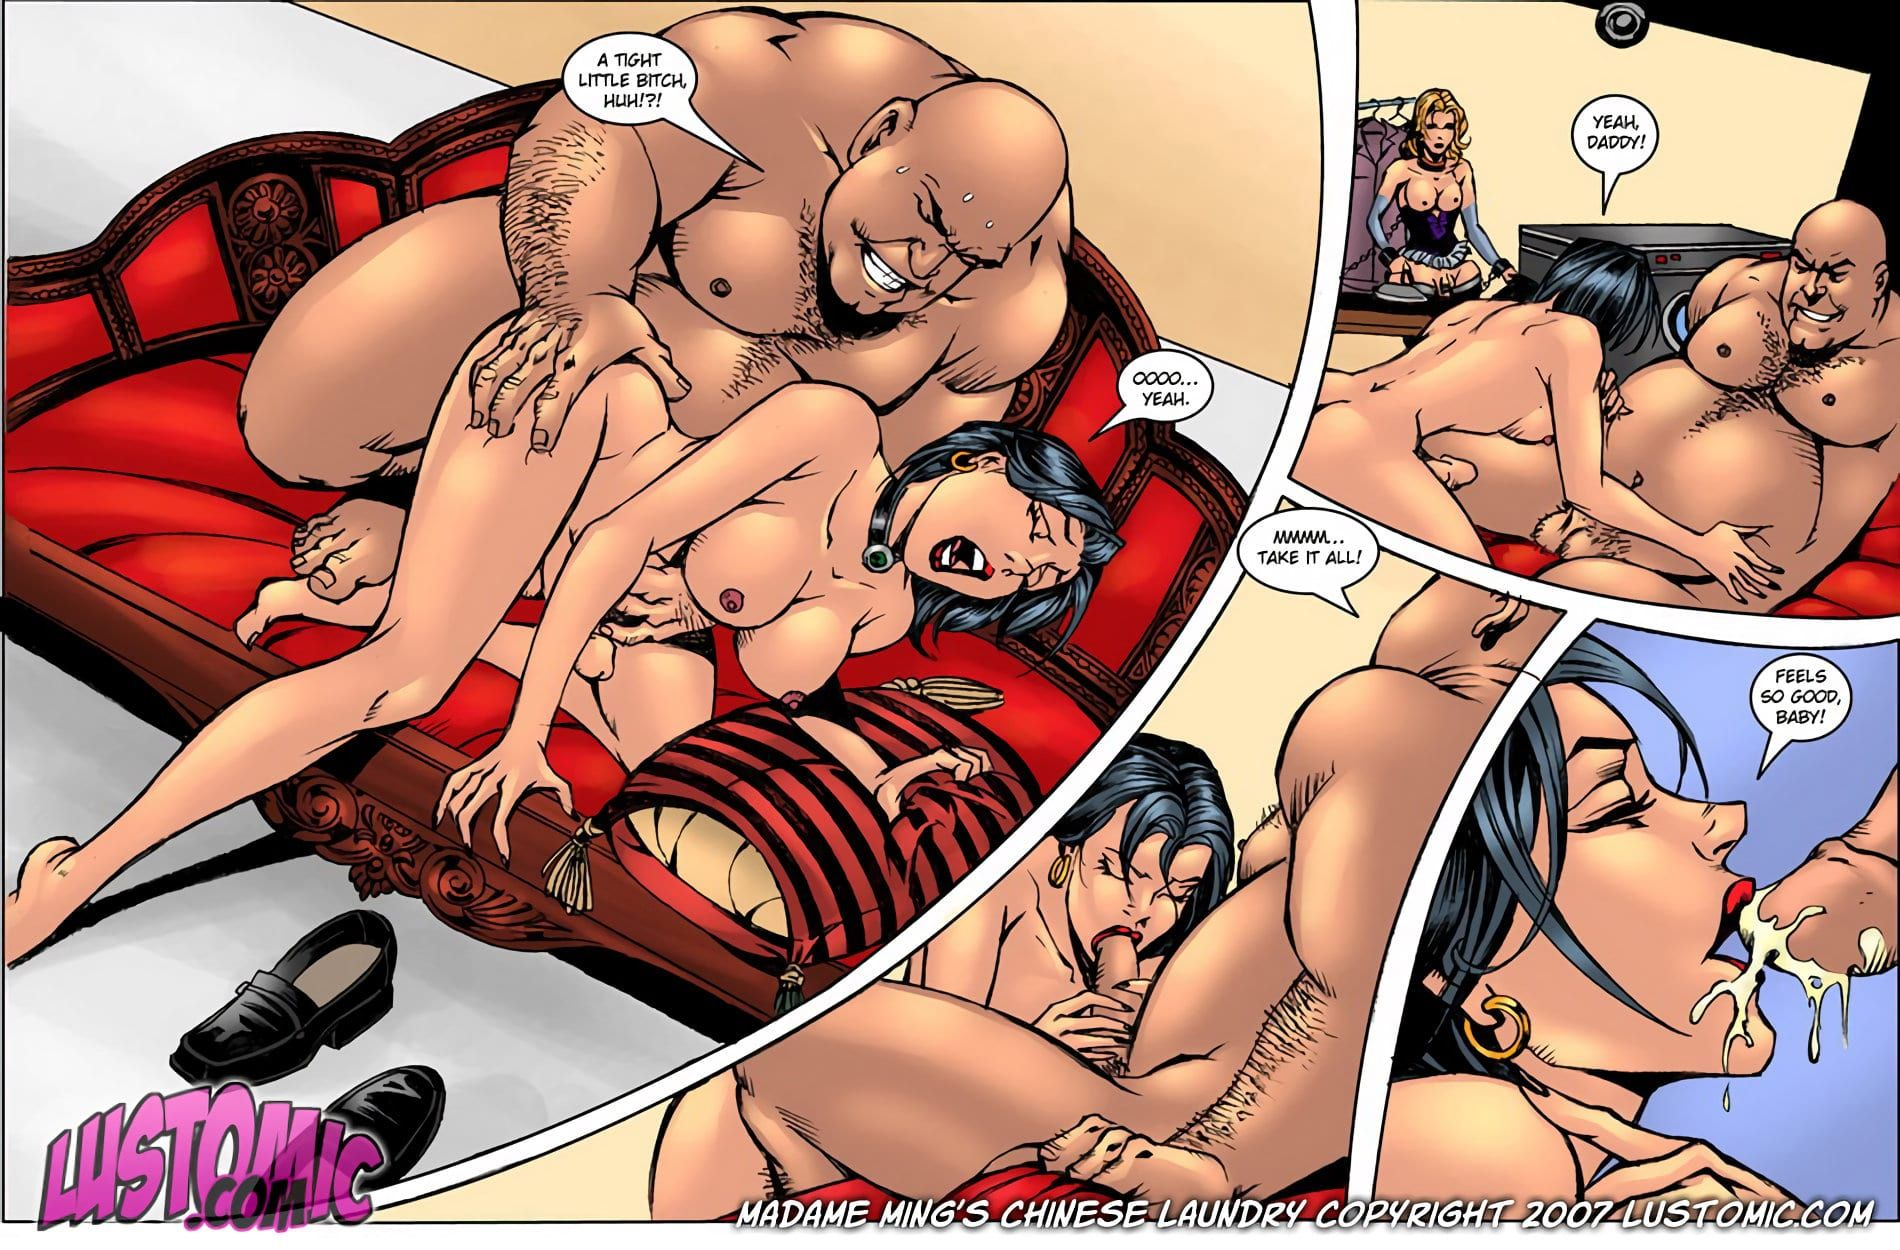 Asian Porn Comic - See Porn Comics Lustomic-Madame Ming's Chinese Laundry completely free and  full colors.